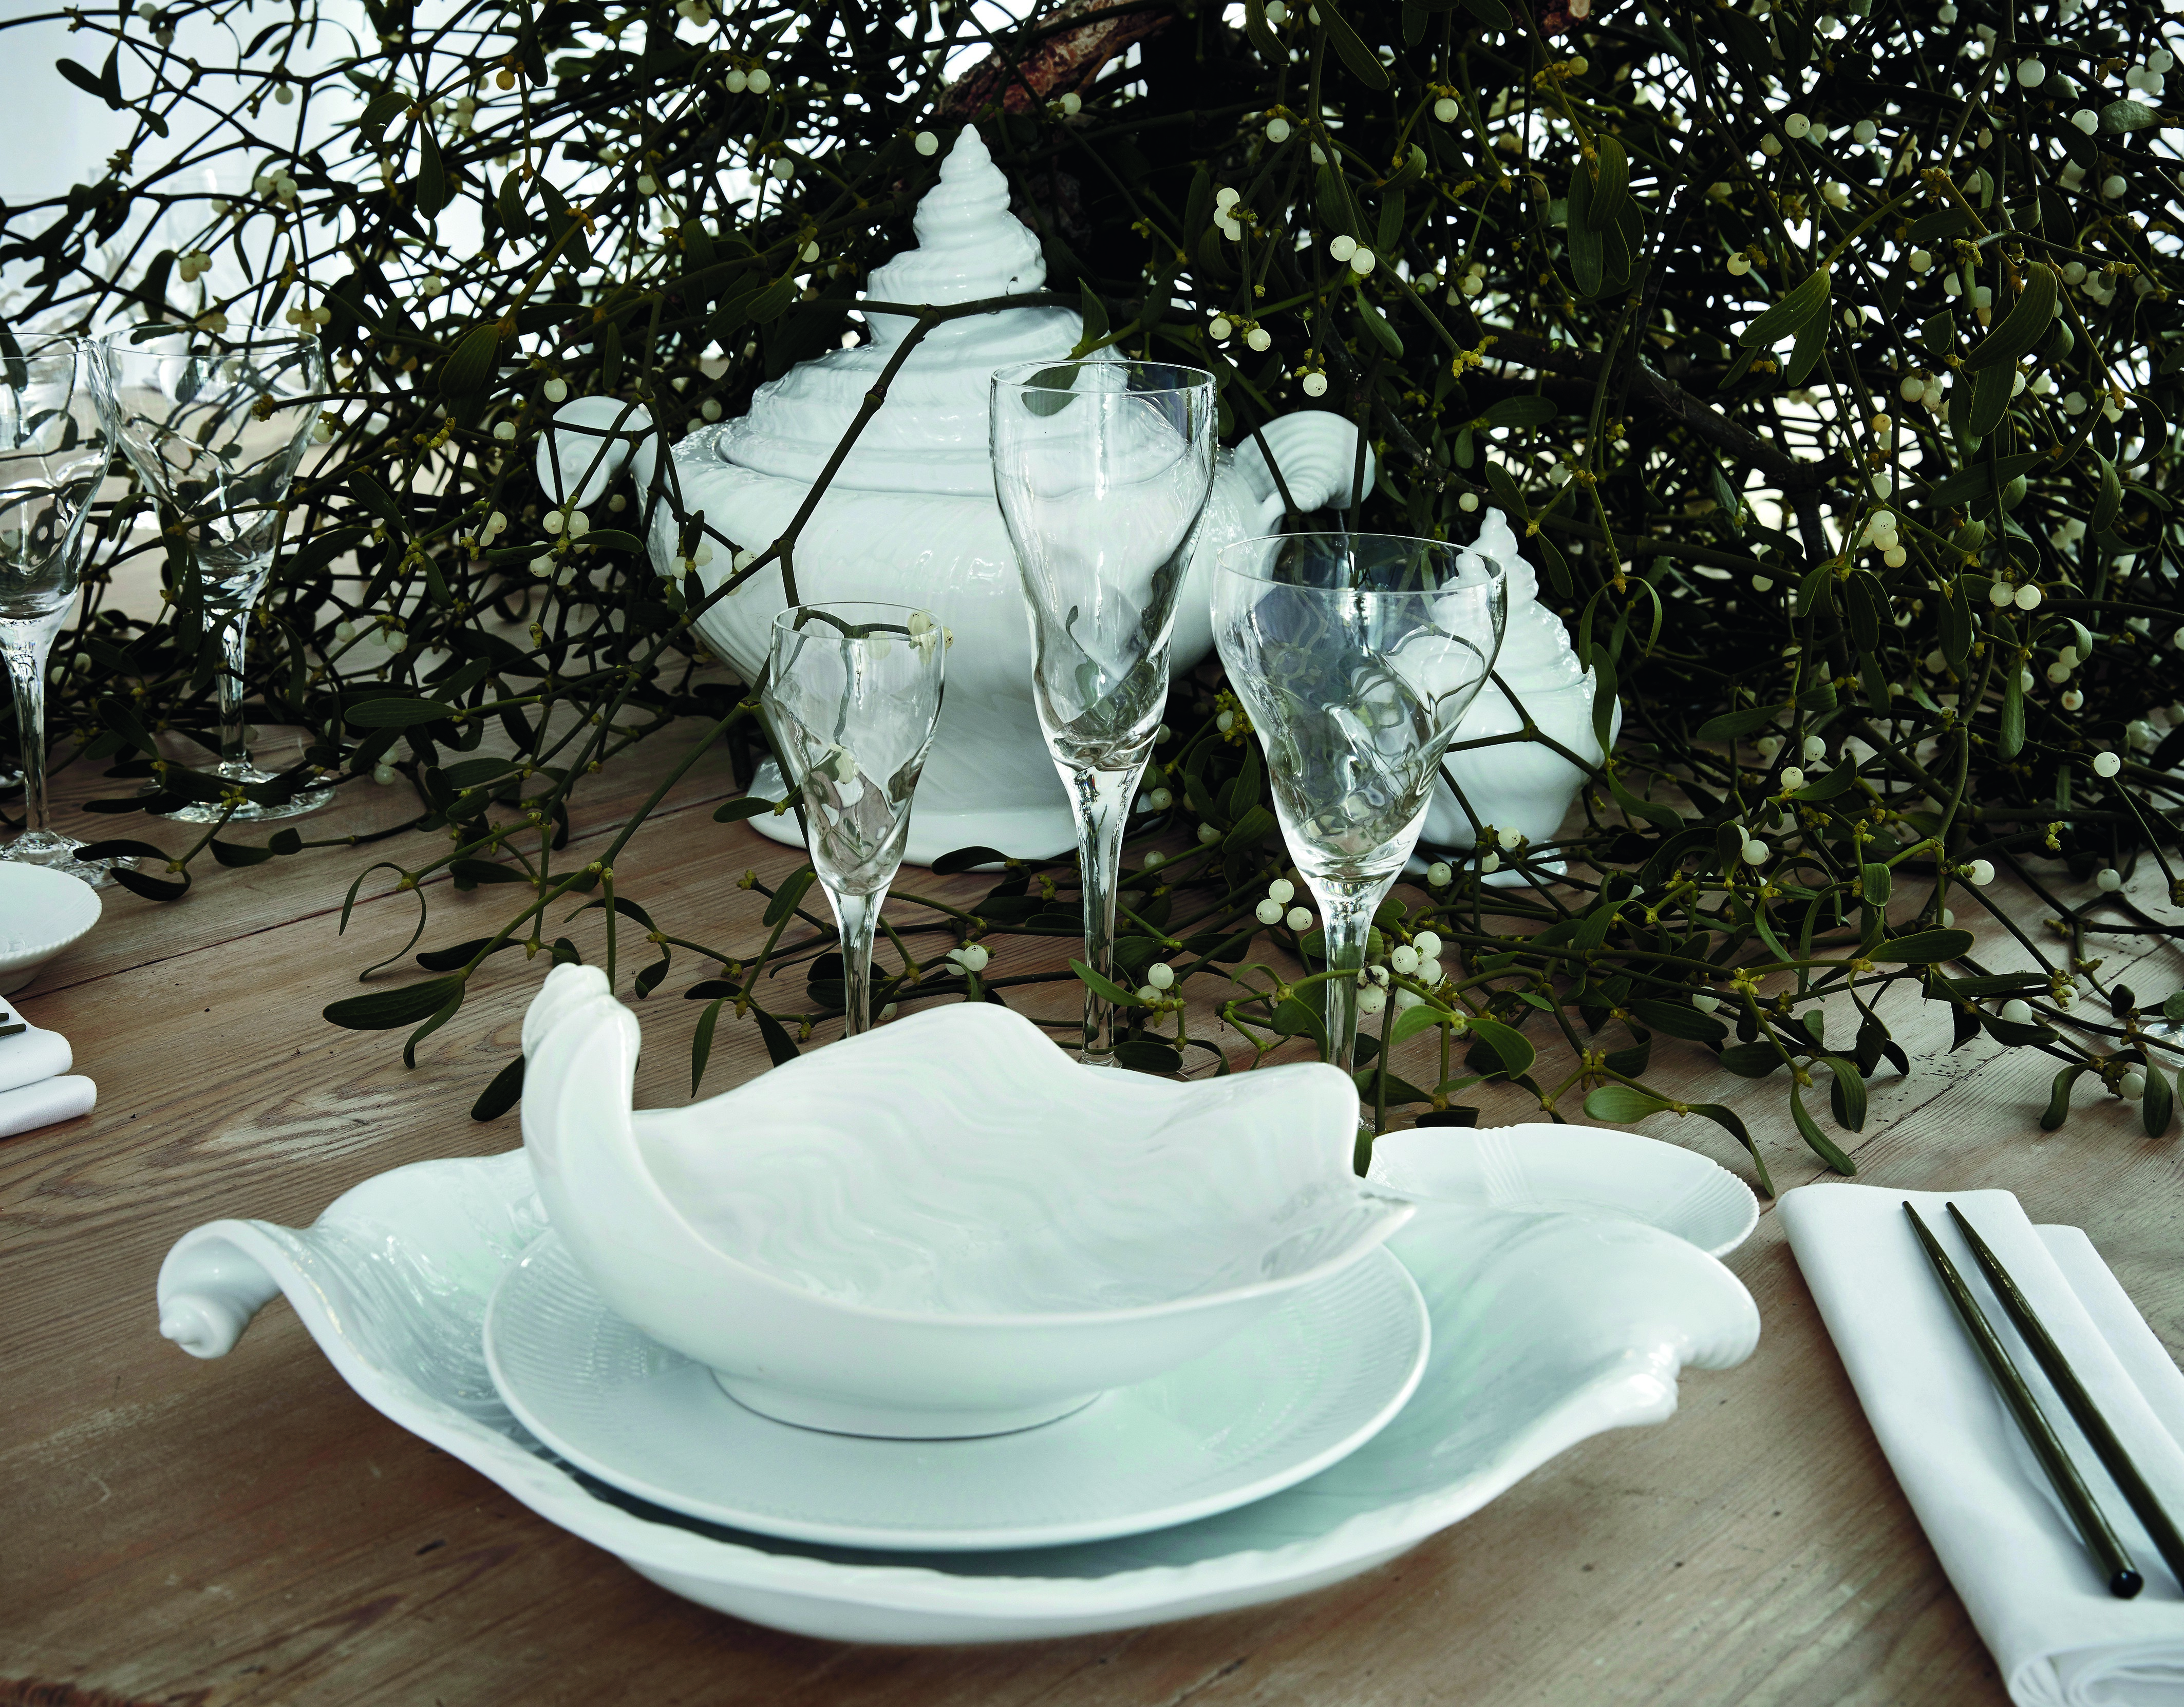 fashionable Christmas - Mark Tan's traditional Scandinavia table with natural greenery takes and tiny lights on a dramatic organic white-on-white affect with Arje Griegst's Conch series dishware - Royal Copenhagen via Atticmag